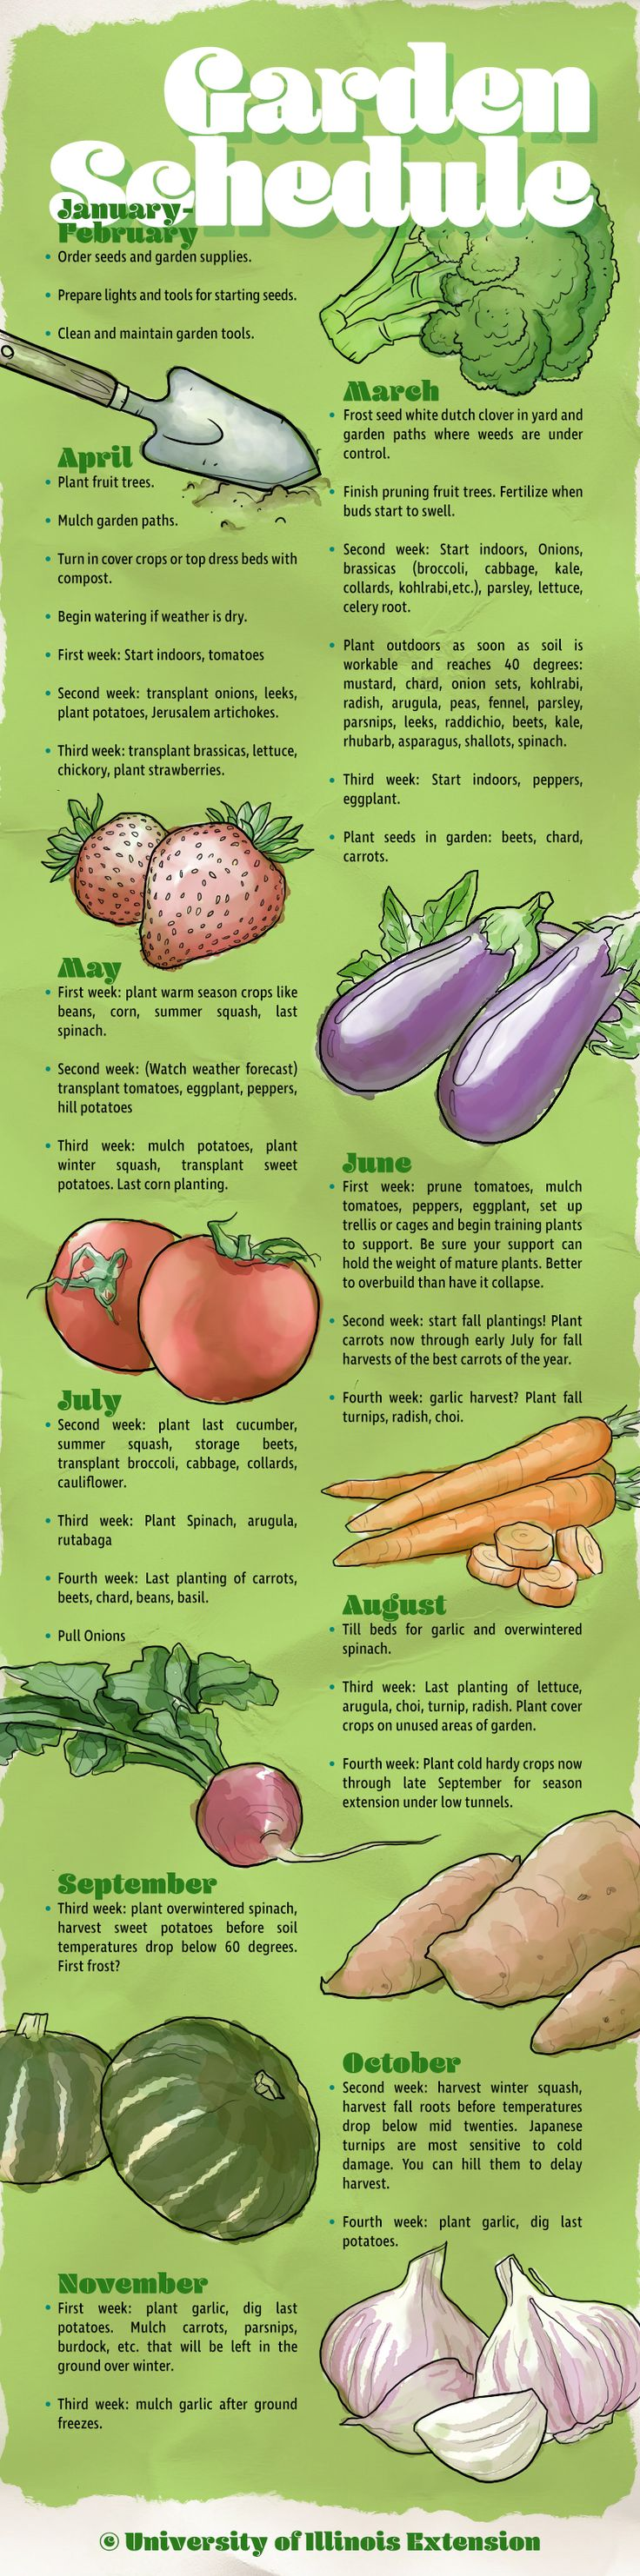 A month-by-month guide to gardening ... #Vegetable #Garden #GardenIdeas #GardenTips #GardenTricks #VegetableGarden #Farm #Farming #Gardening